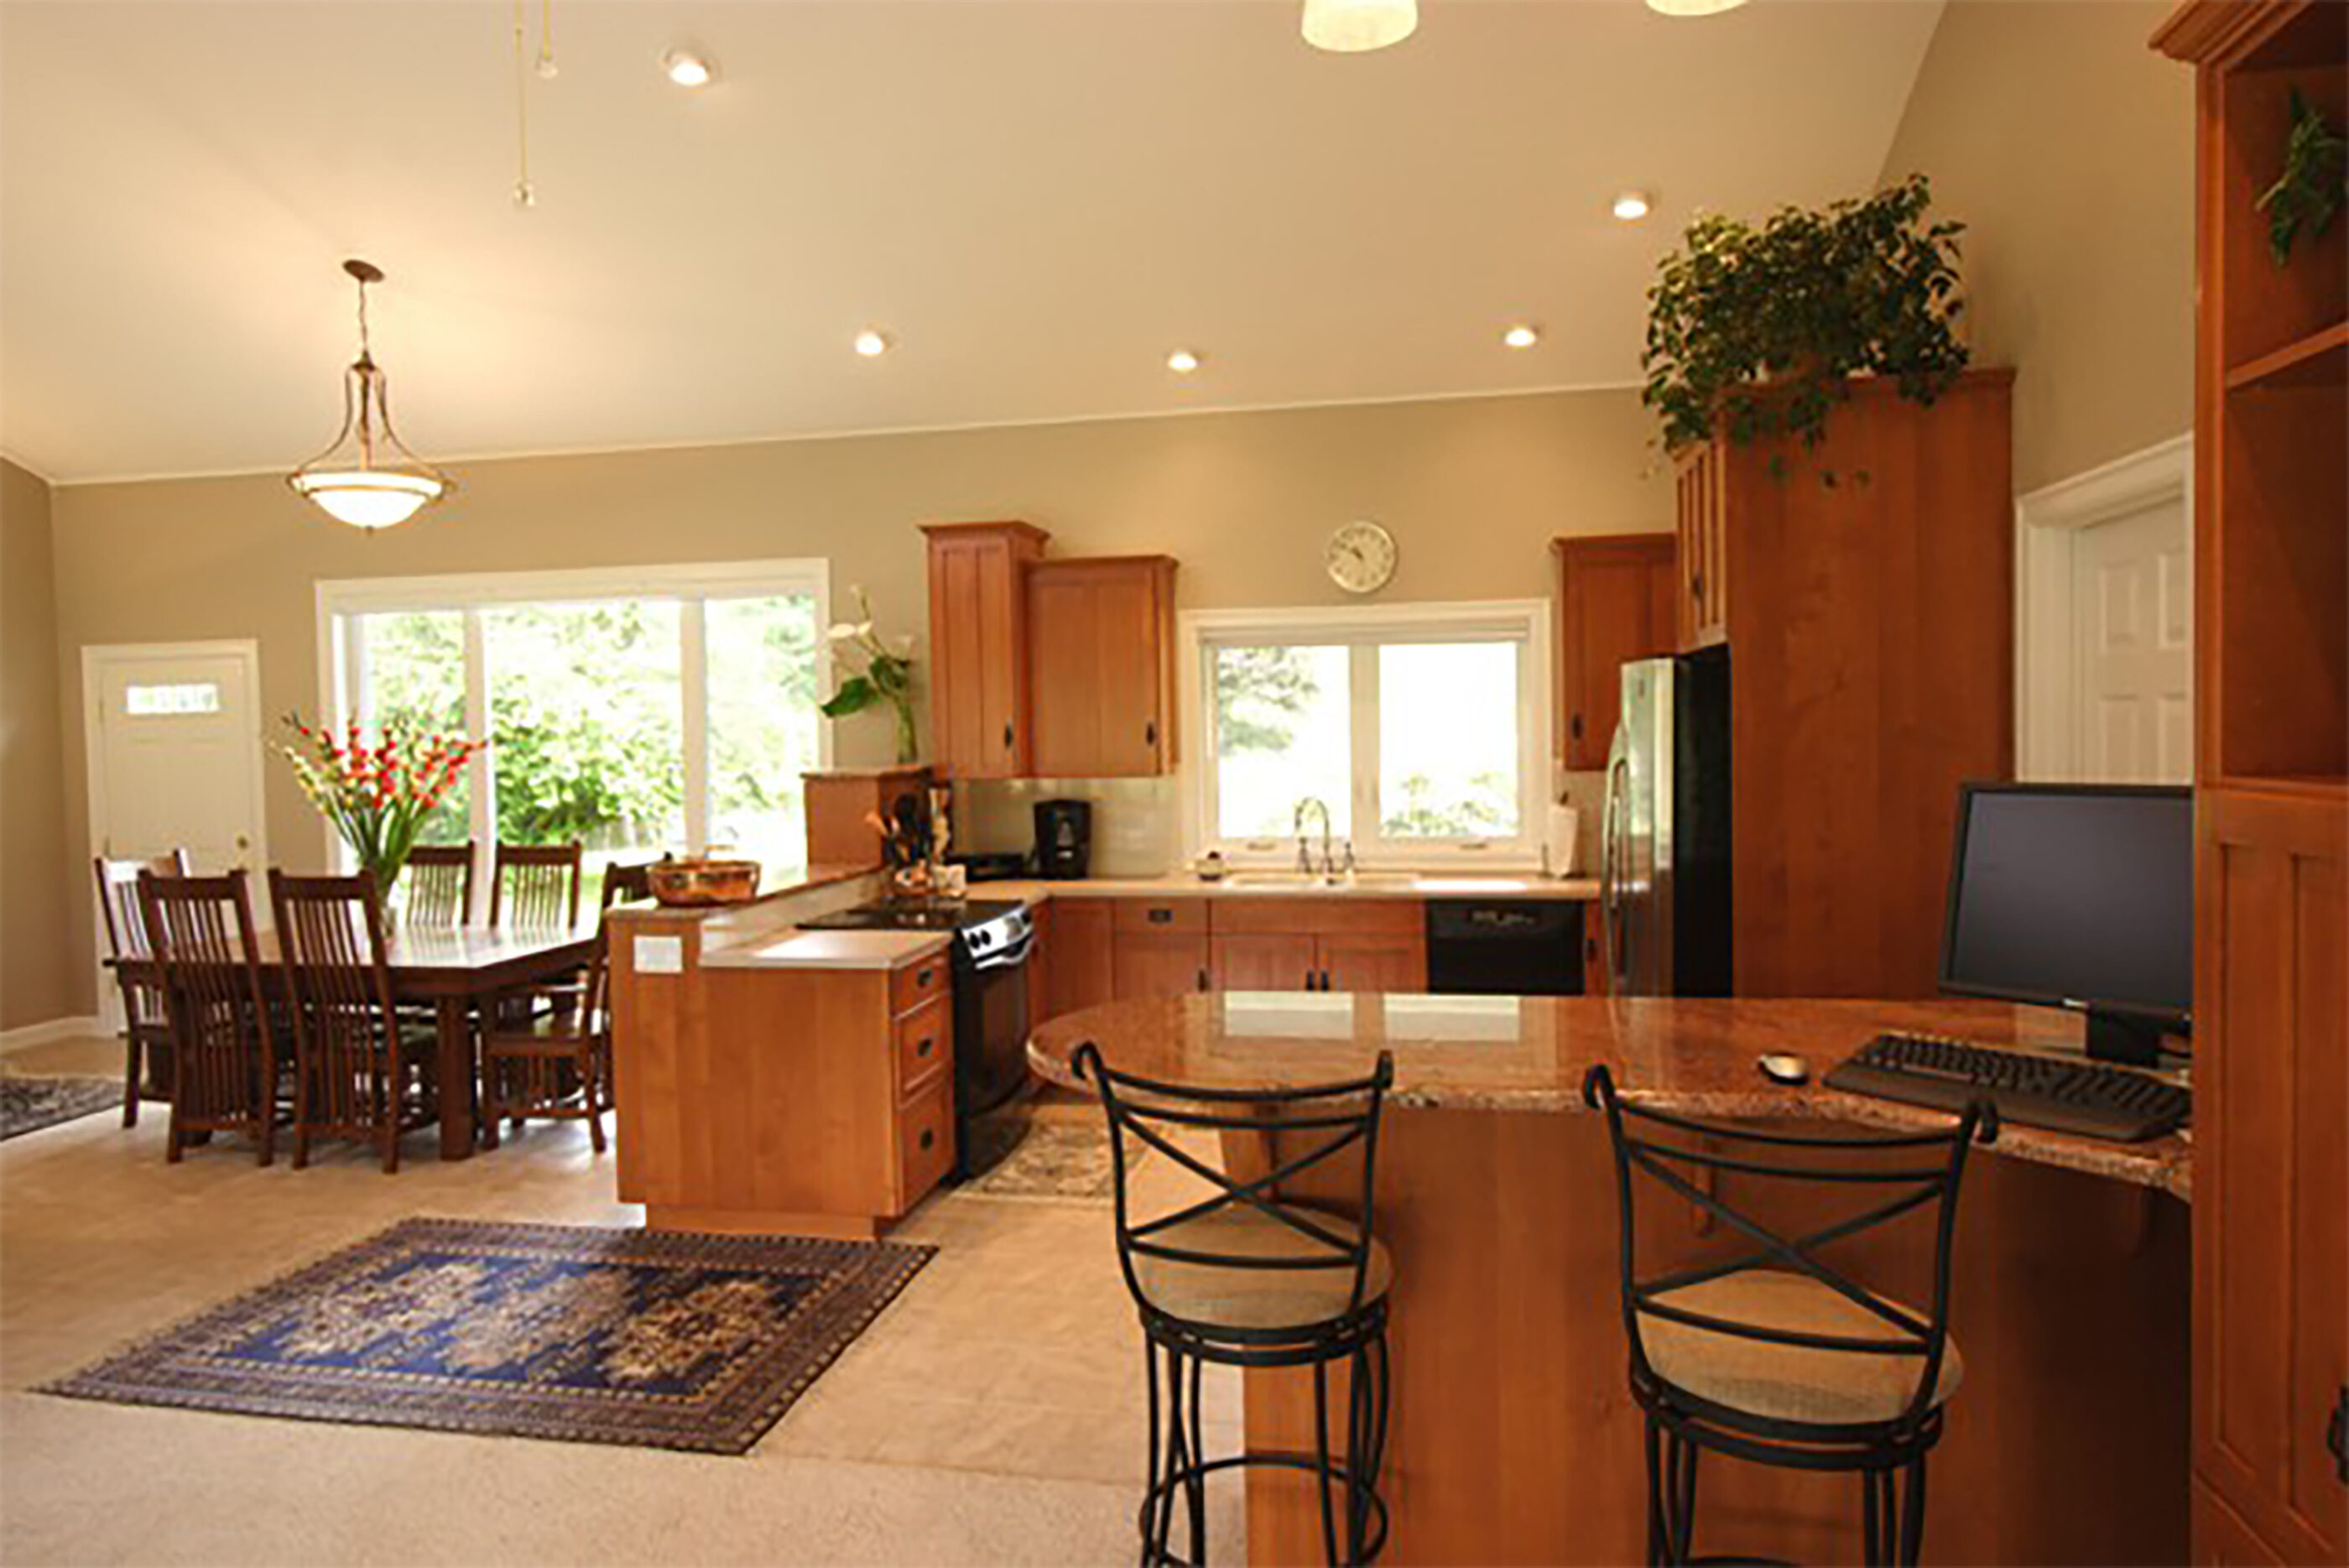 A granite bar divides the living and kitchen areas can work as a computer center or bar for entertaining.